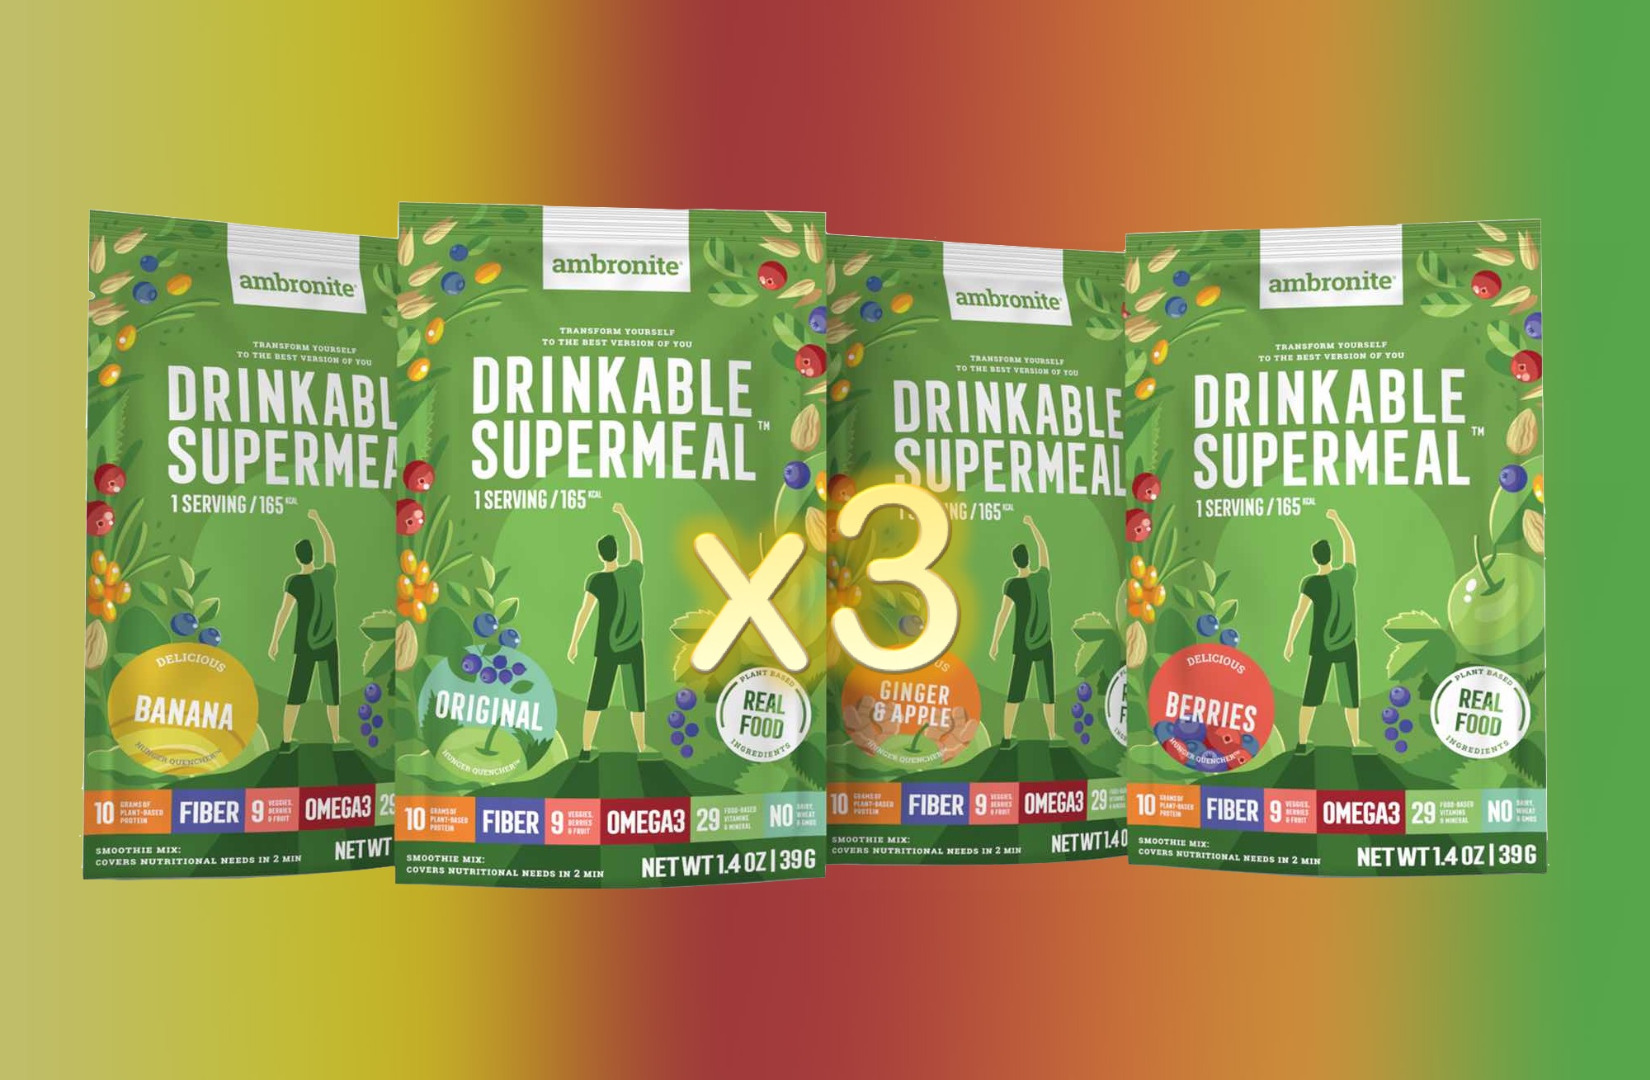 Ambronite Drinkable Supermeal 12 x 165 kcal Snack Meals Pack